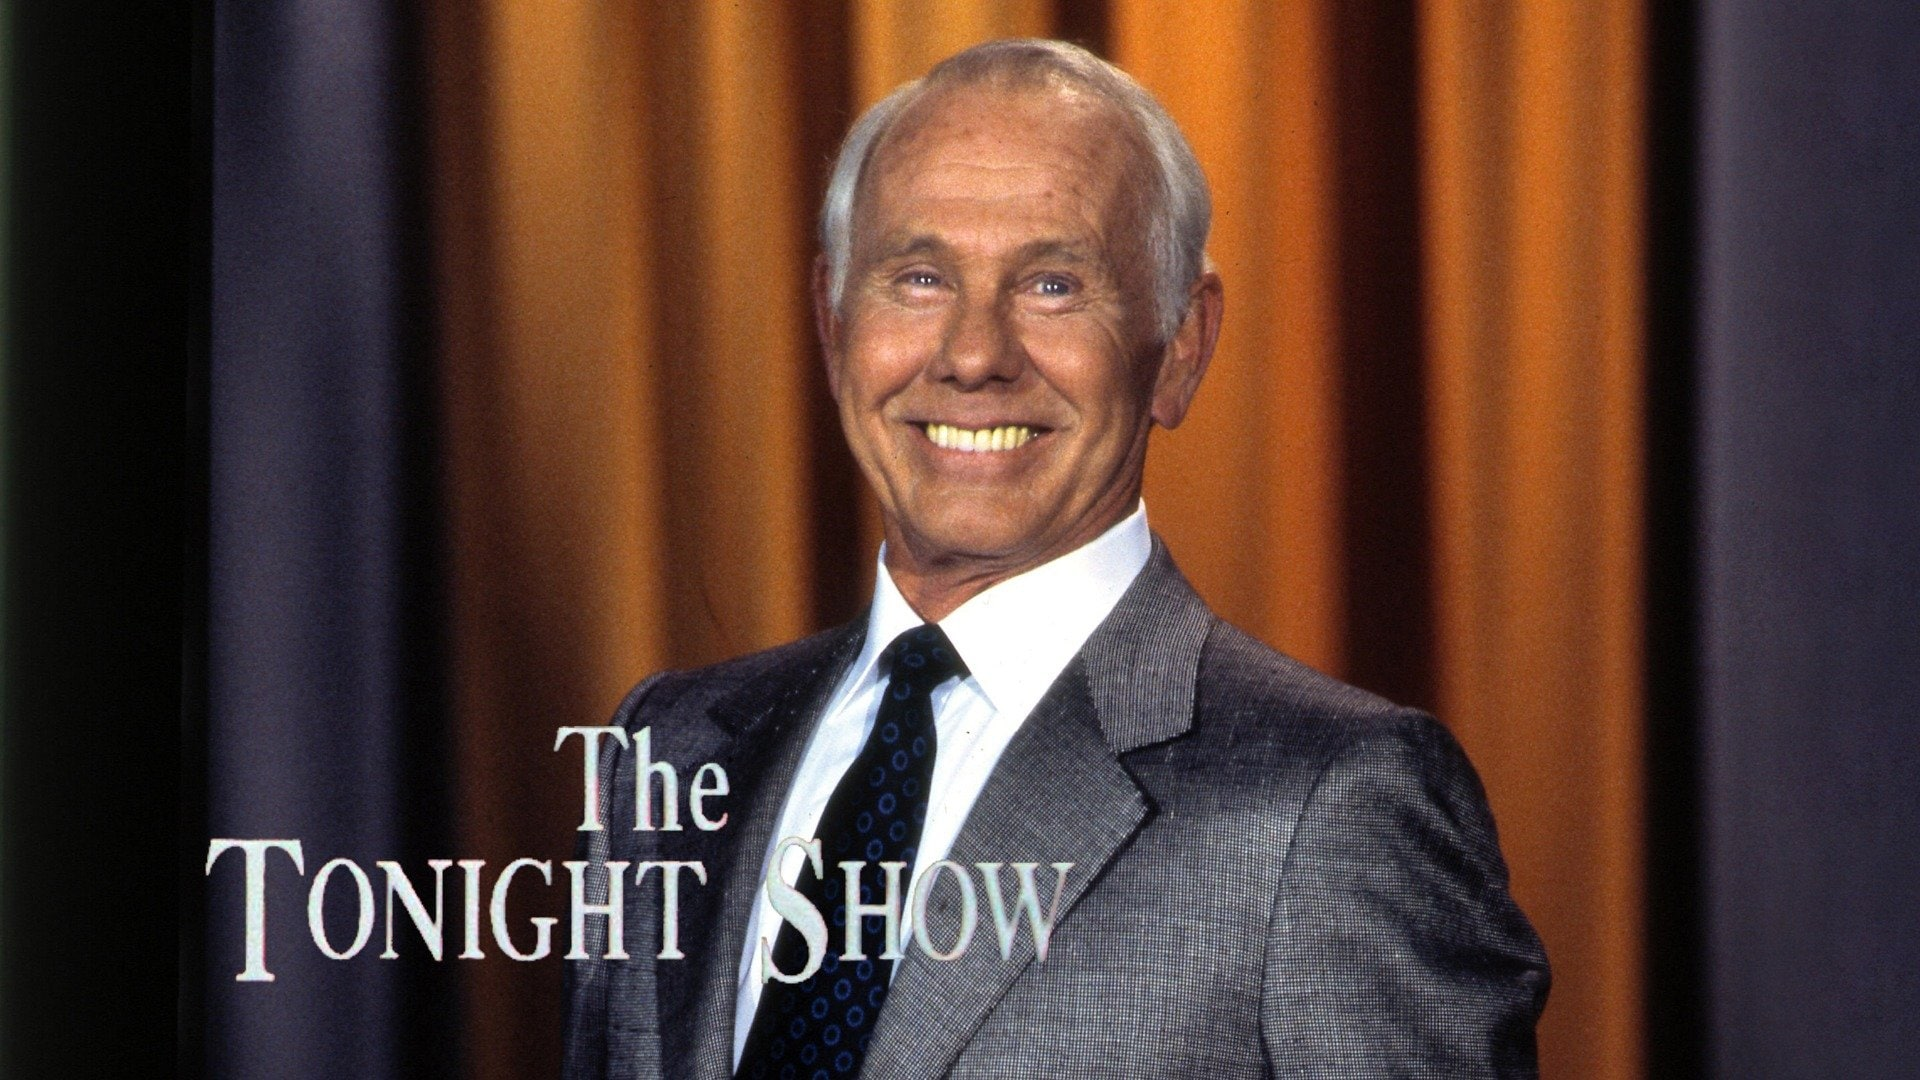 The Johnny Carson Show: The Best Of The Mighty Carson Art Players (5/8/87)